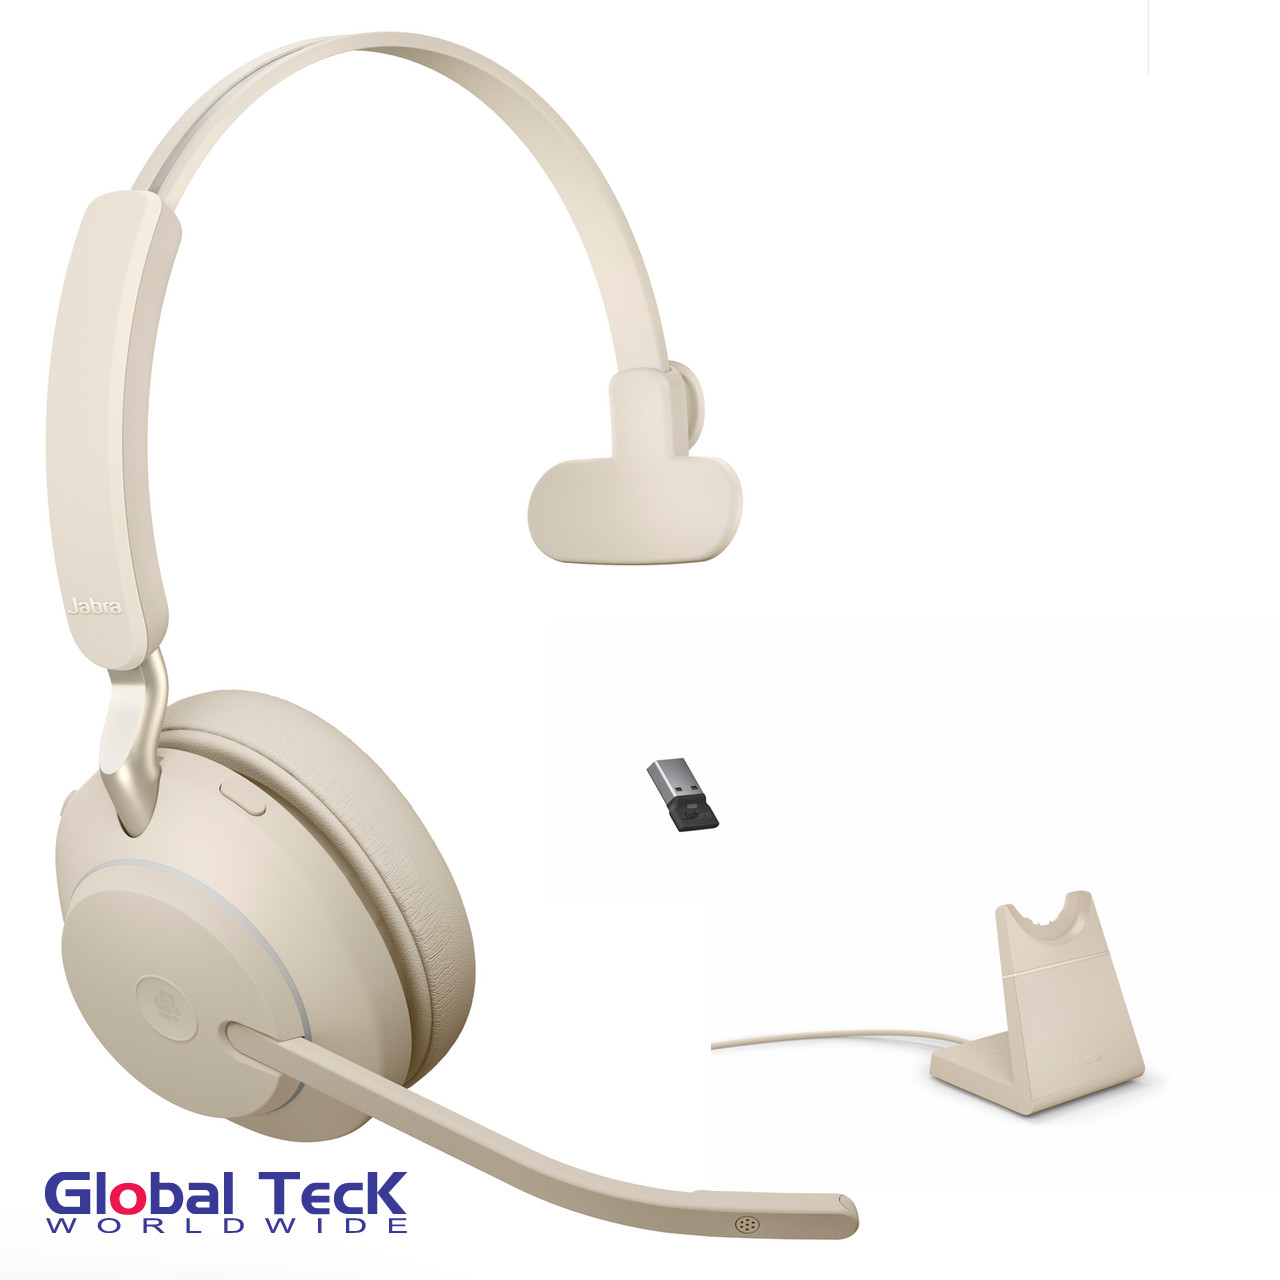 Jabra Evolve2 65 Mono Wireless Headset Beige Uc Version Includes Usb Bluetooth Dongle And Charging Stand Compatible With Softphones Smartphones Tablets Pc Mac 26599 889 988